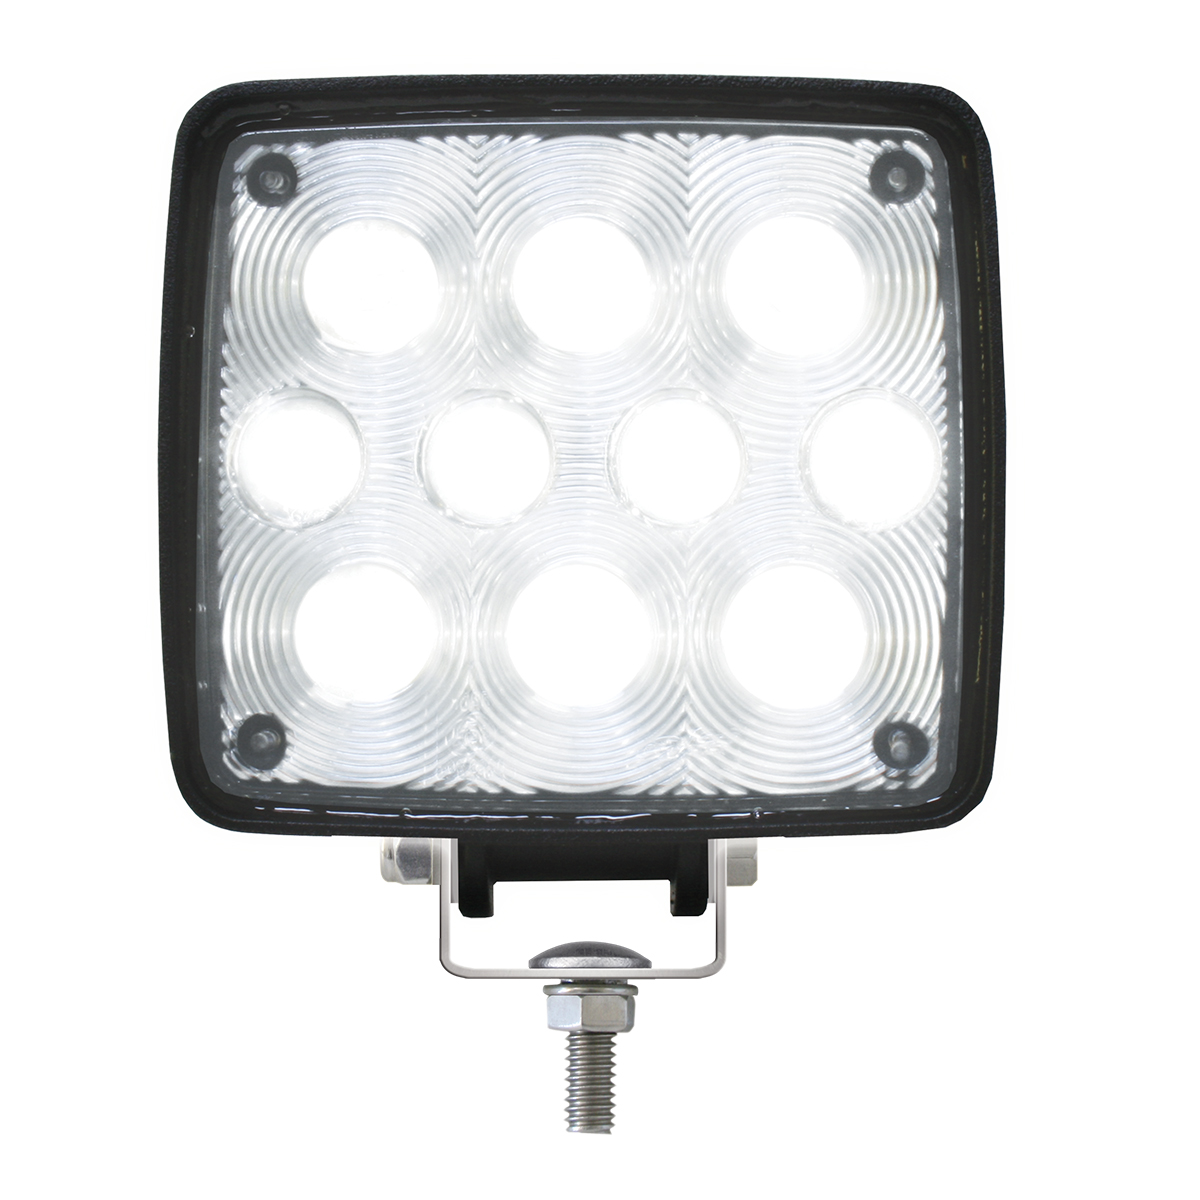 76354 Medium High Power LED Work Light